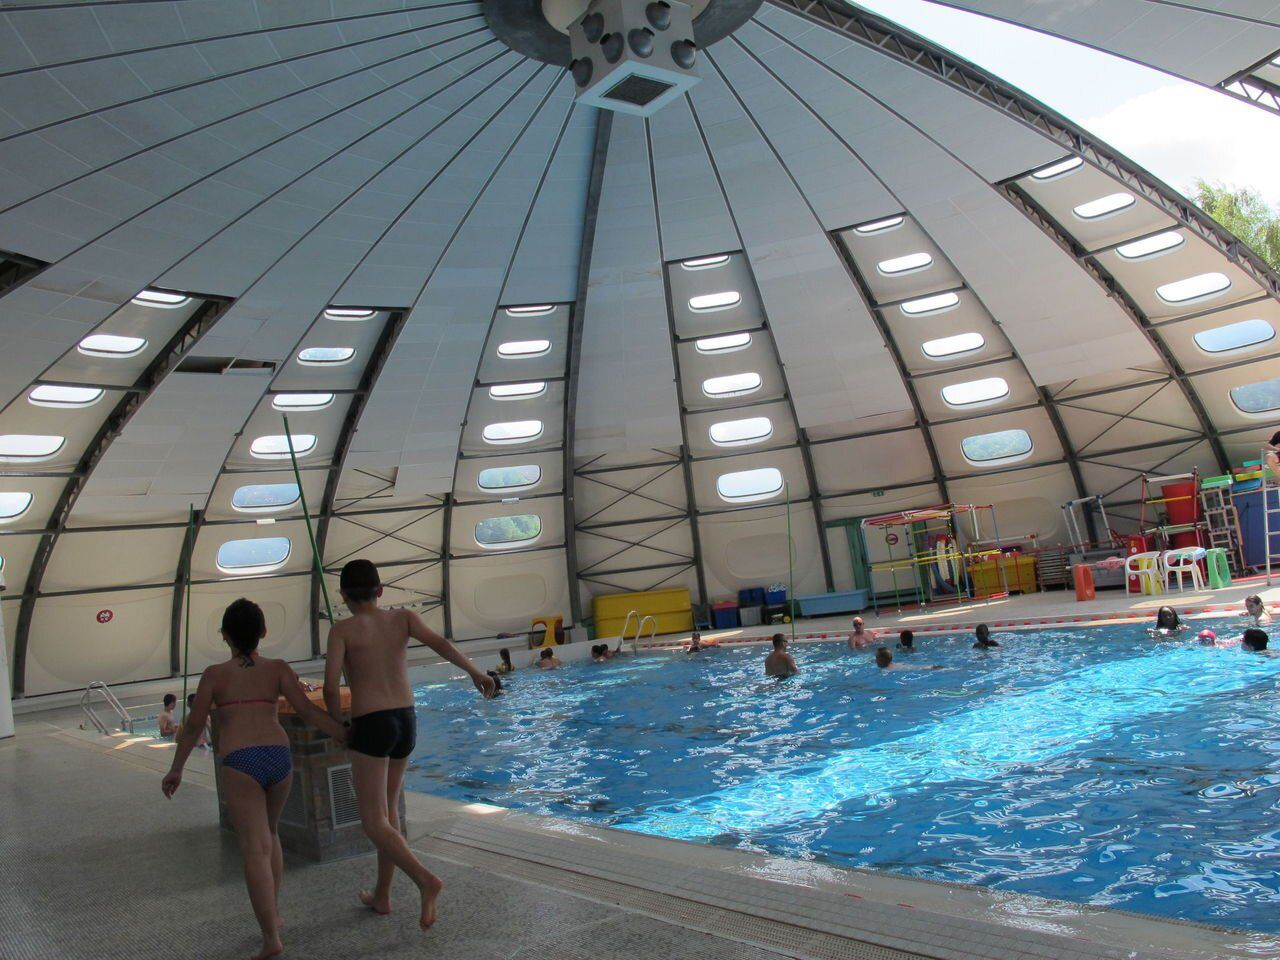 La Piscine Tournesol De Beauvais Attend Sa Réhabilitation ... serapportantà Piscine De Bresles